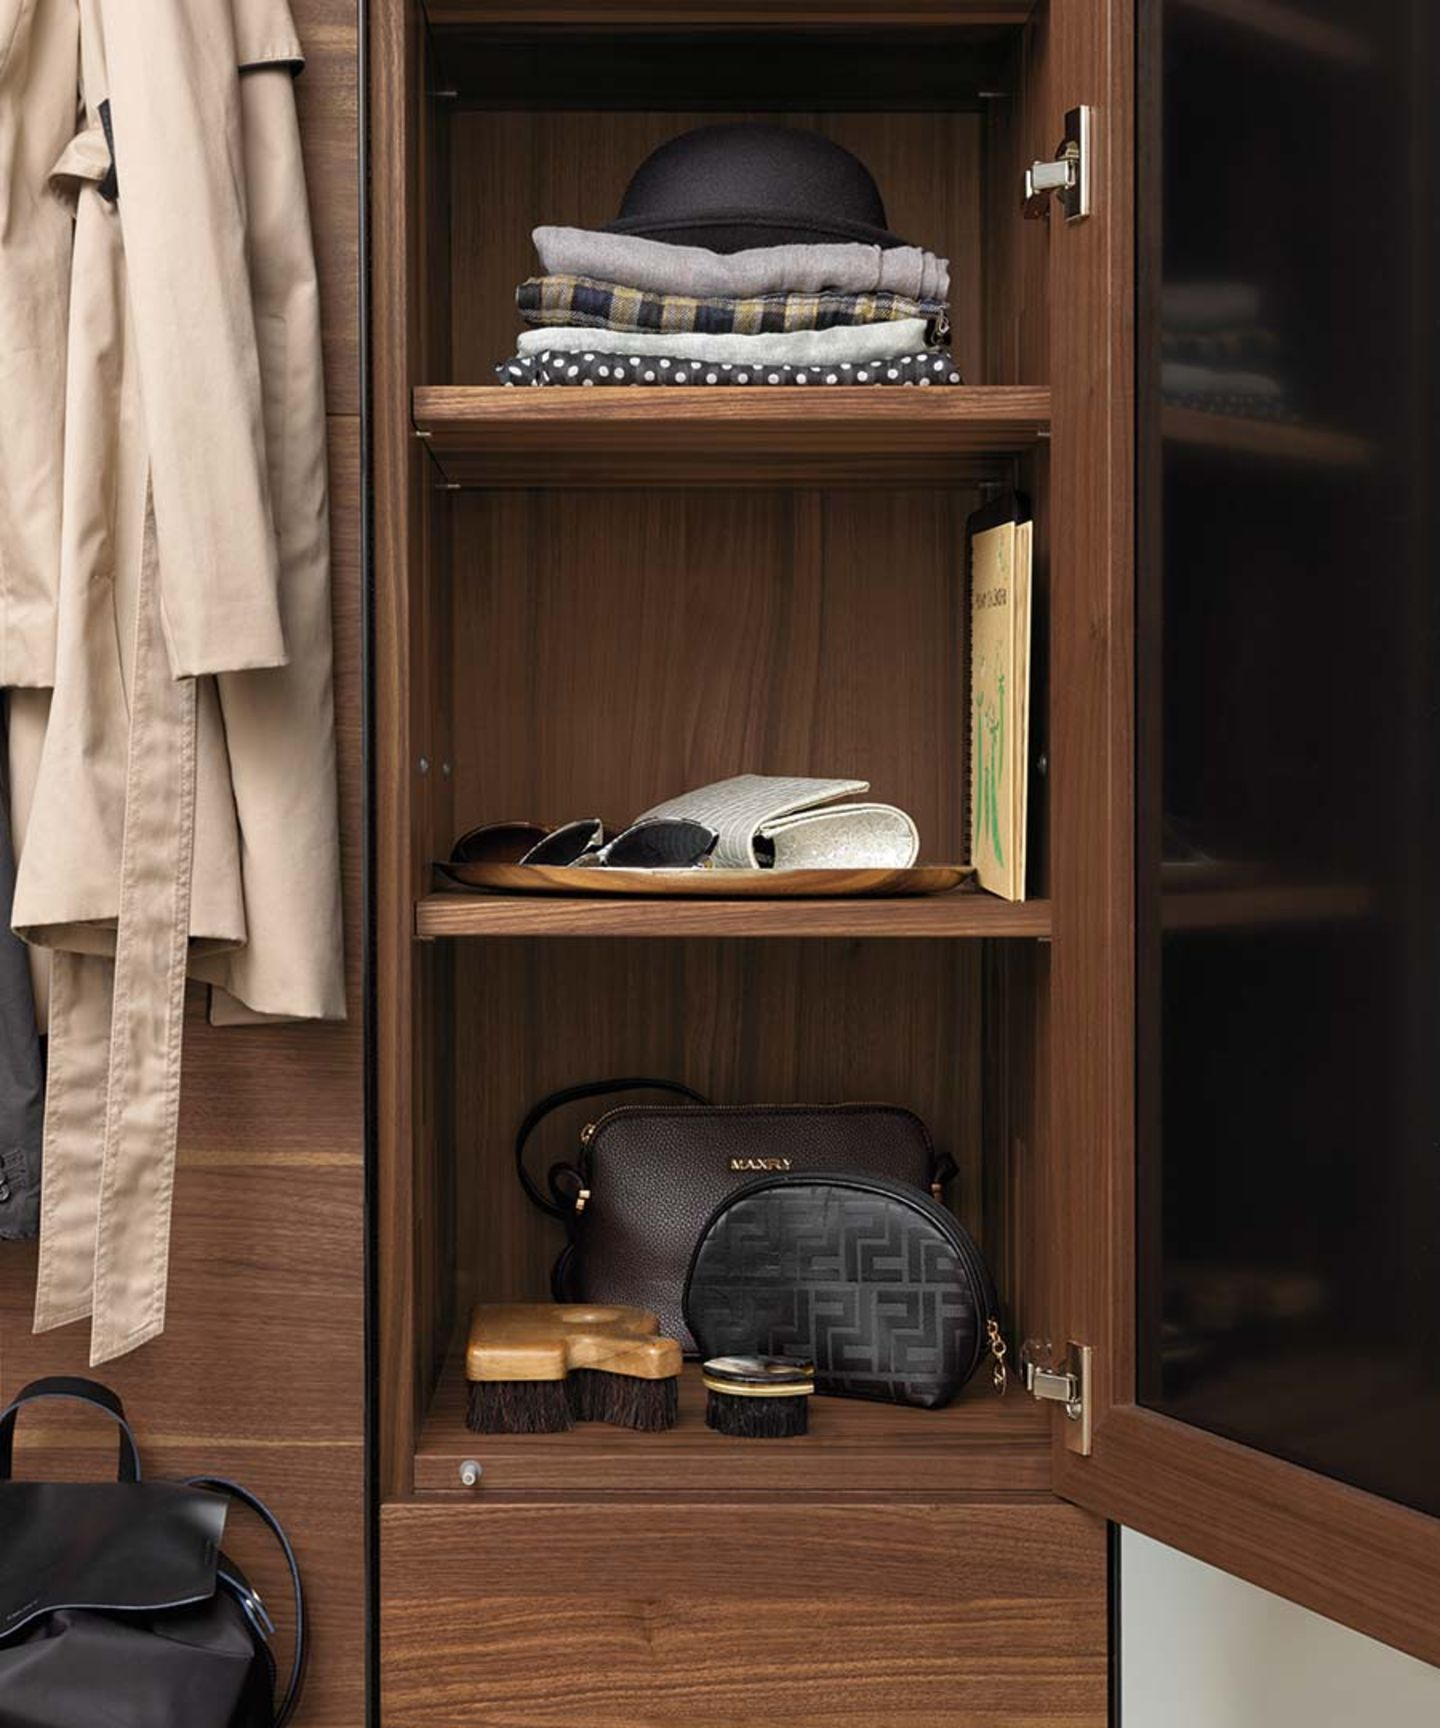 cubus pure coat cabinet with plenty of storage space